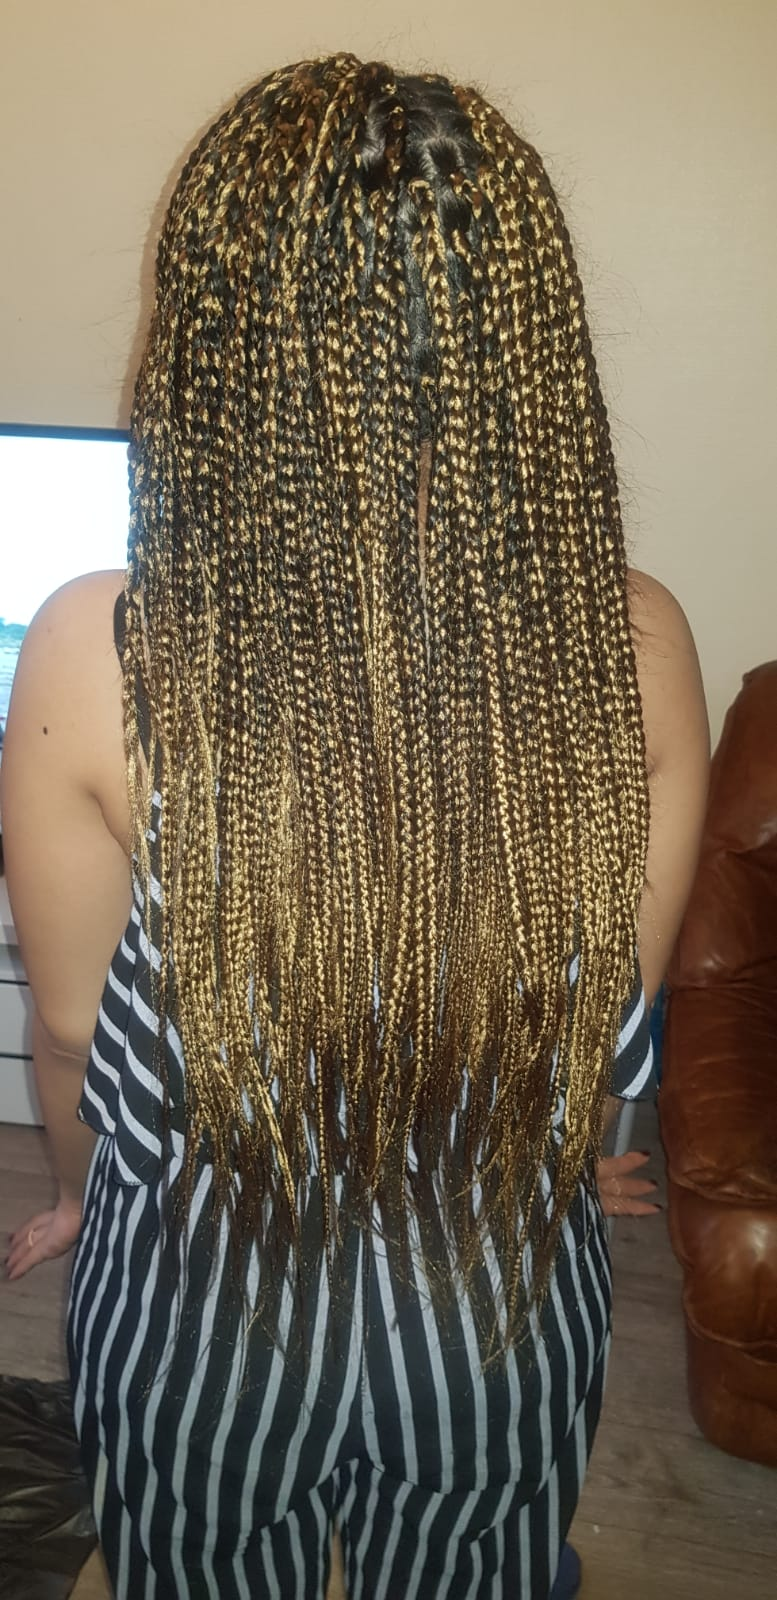 salon de coiffure afro tresse tresses box braids crochet braids vanilles tissages paris 75 77 78 91 92 93 94 95 TJCFHJYD